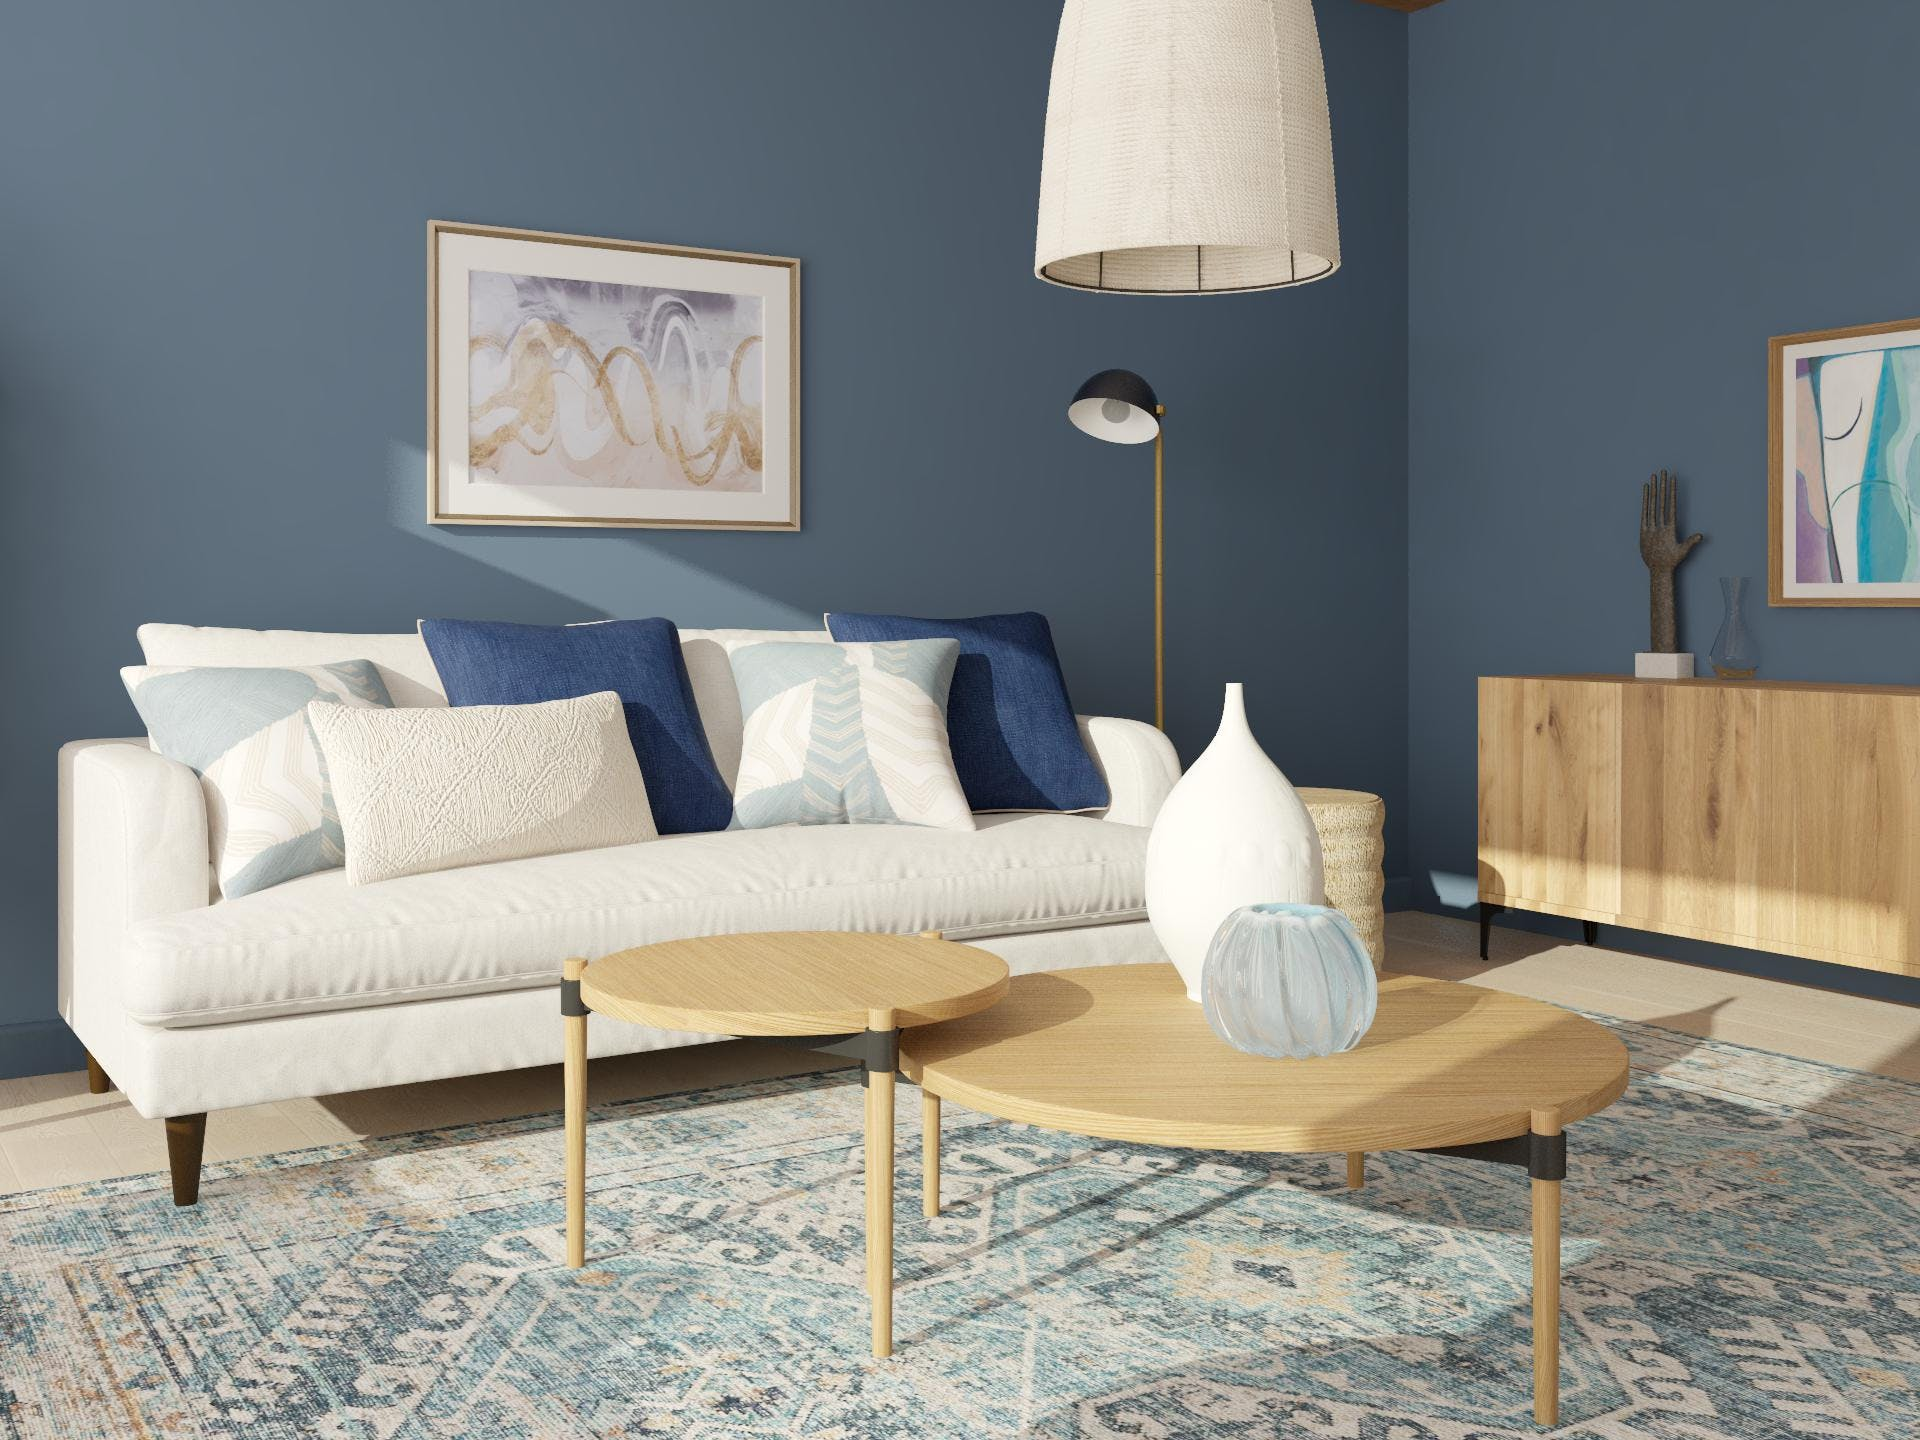 Contemporary Sofa in Tranquil Blue Hues Living Room